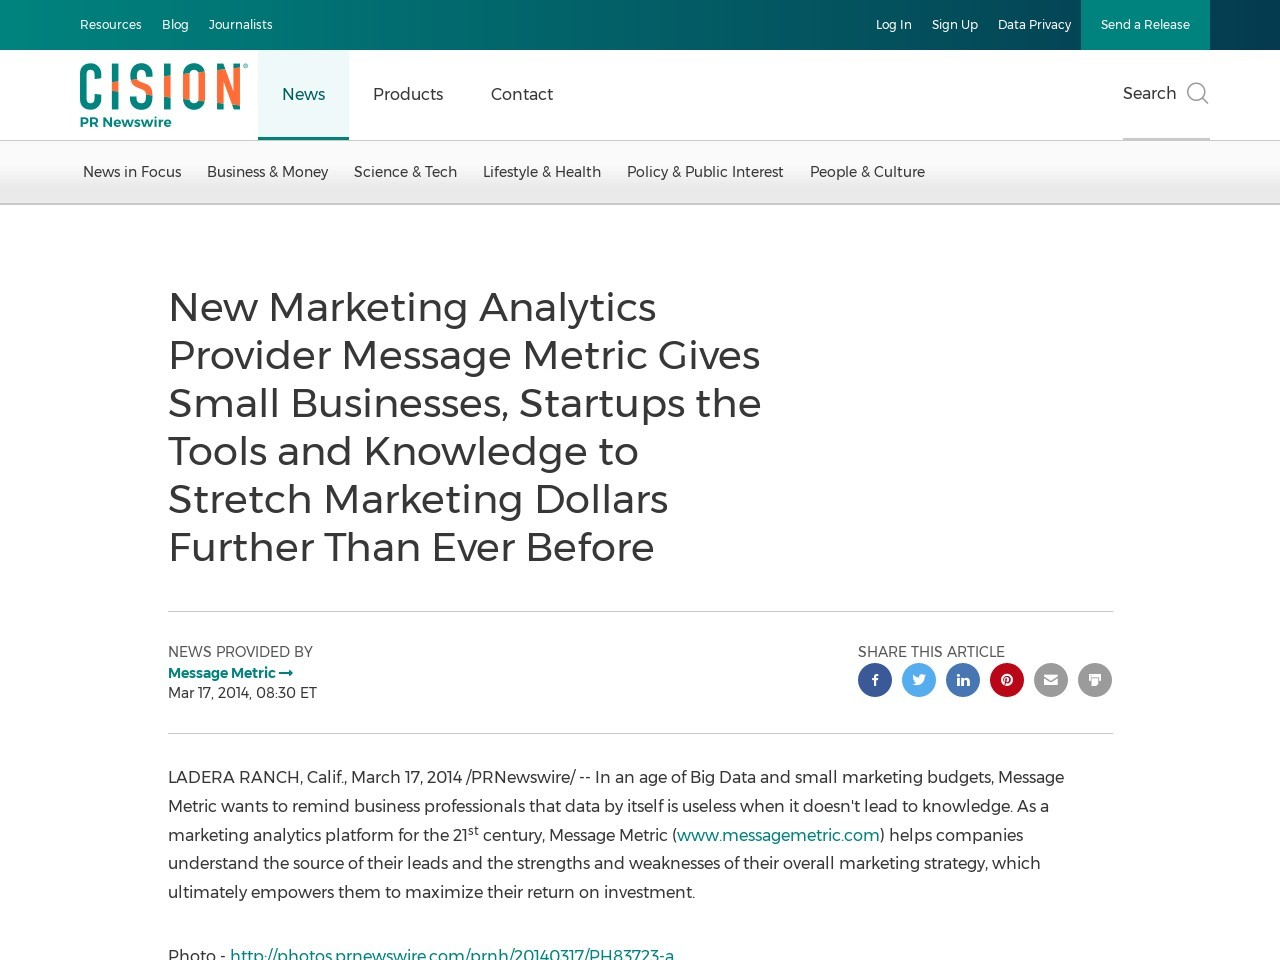 New Marketing Analytics Provider Message Metric Gives Small Businesses …